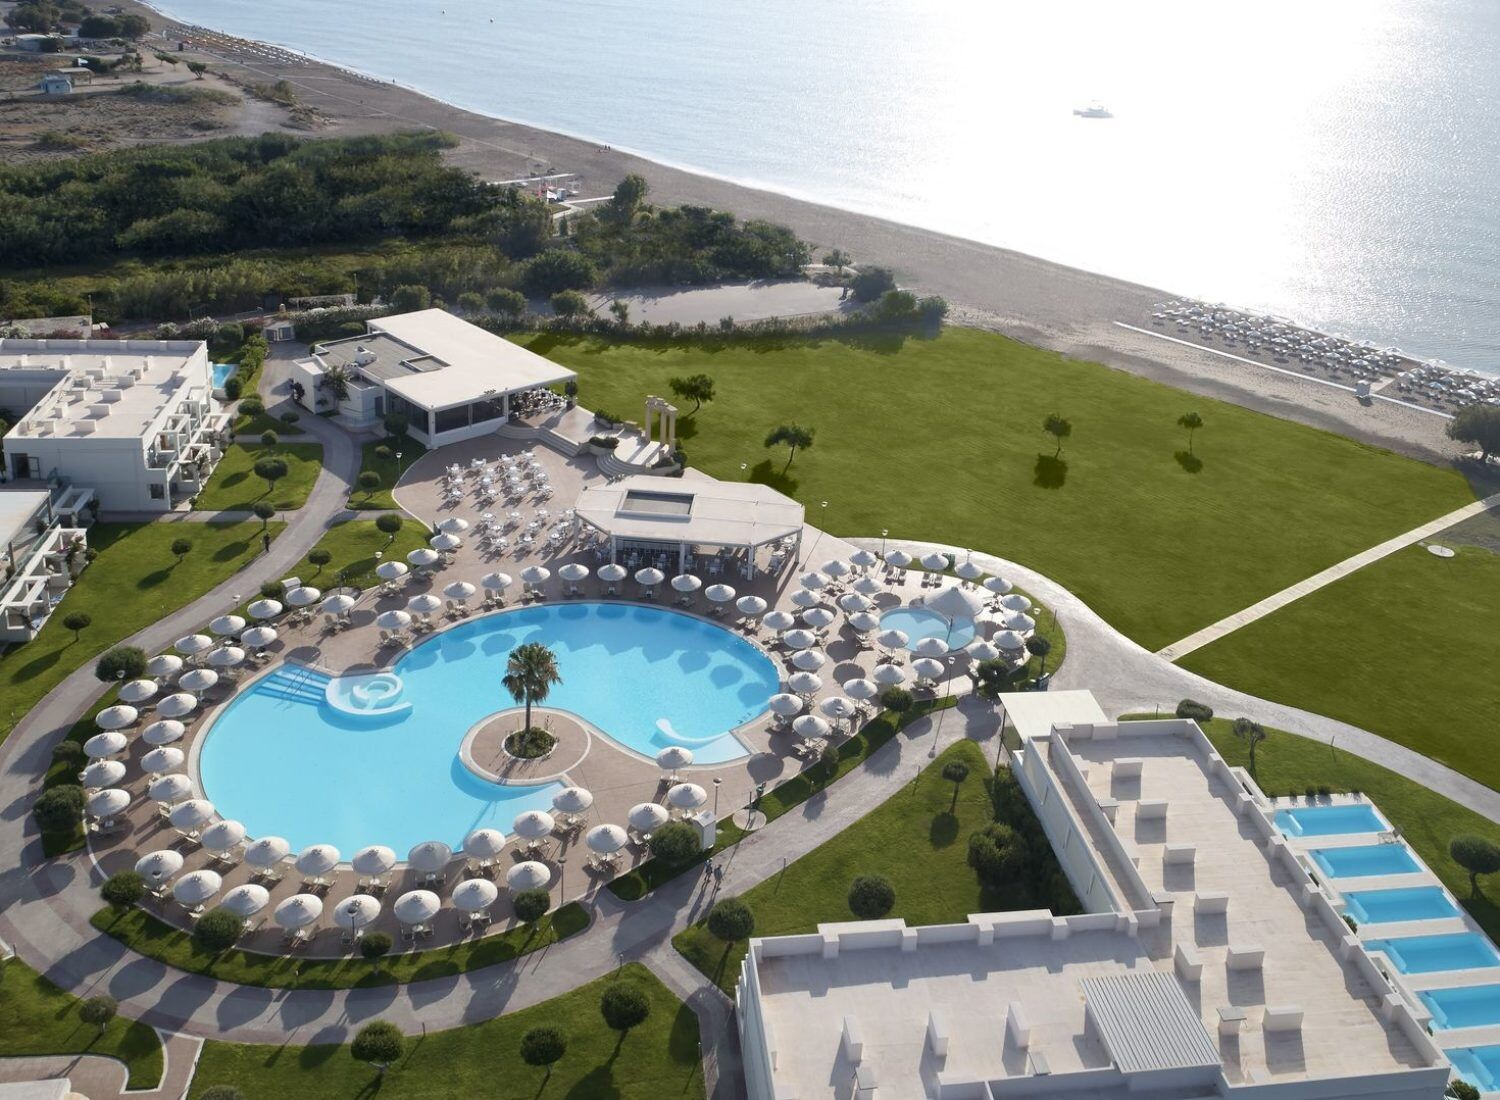 Apollo Blue Hotel, a beachfront 5 star hotel in Rhodes